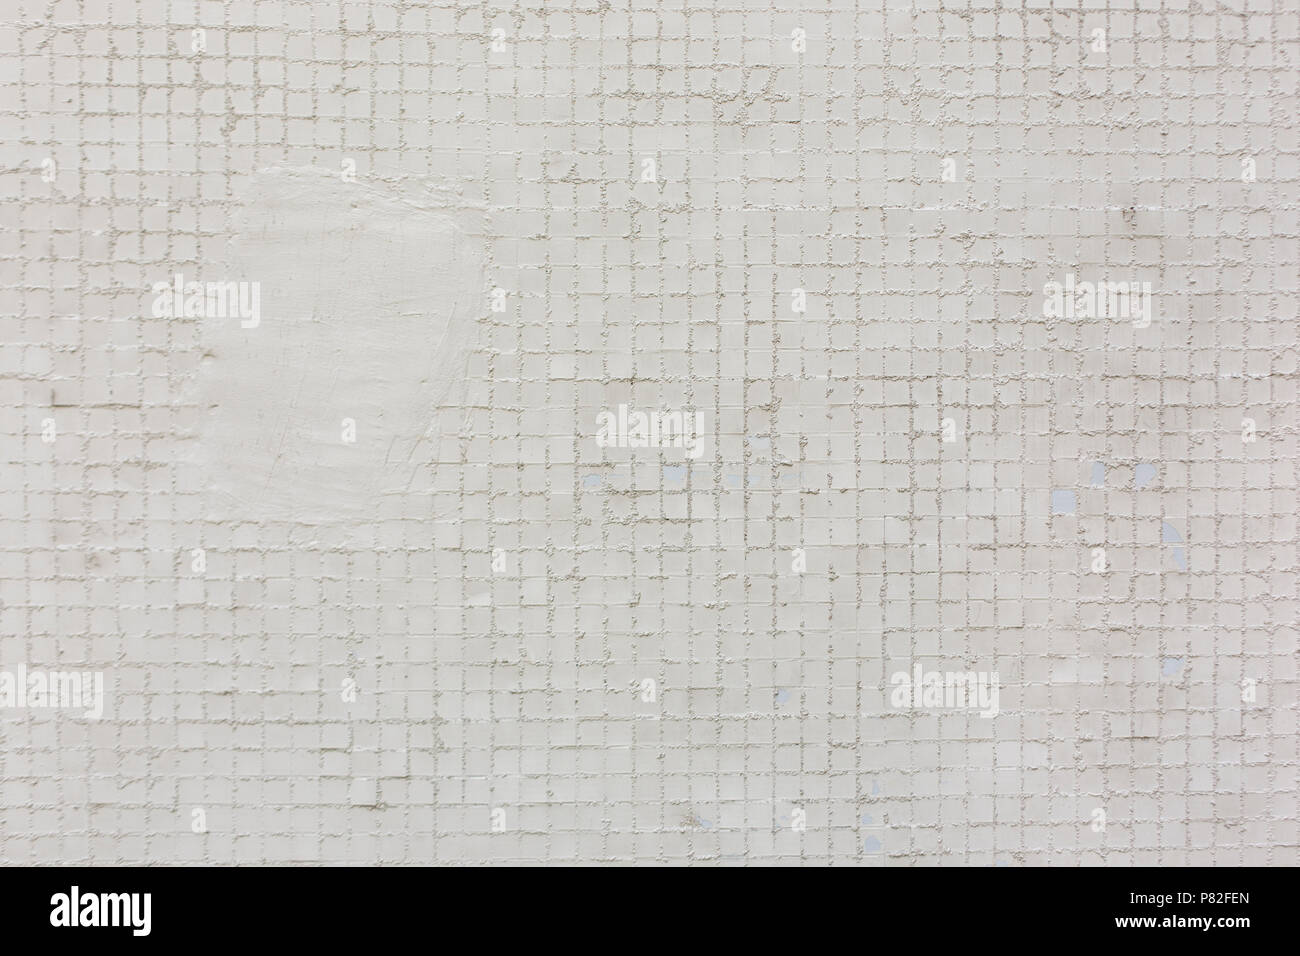 White Square Tiles Pattern Texture Background